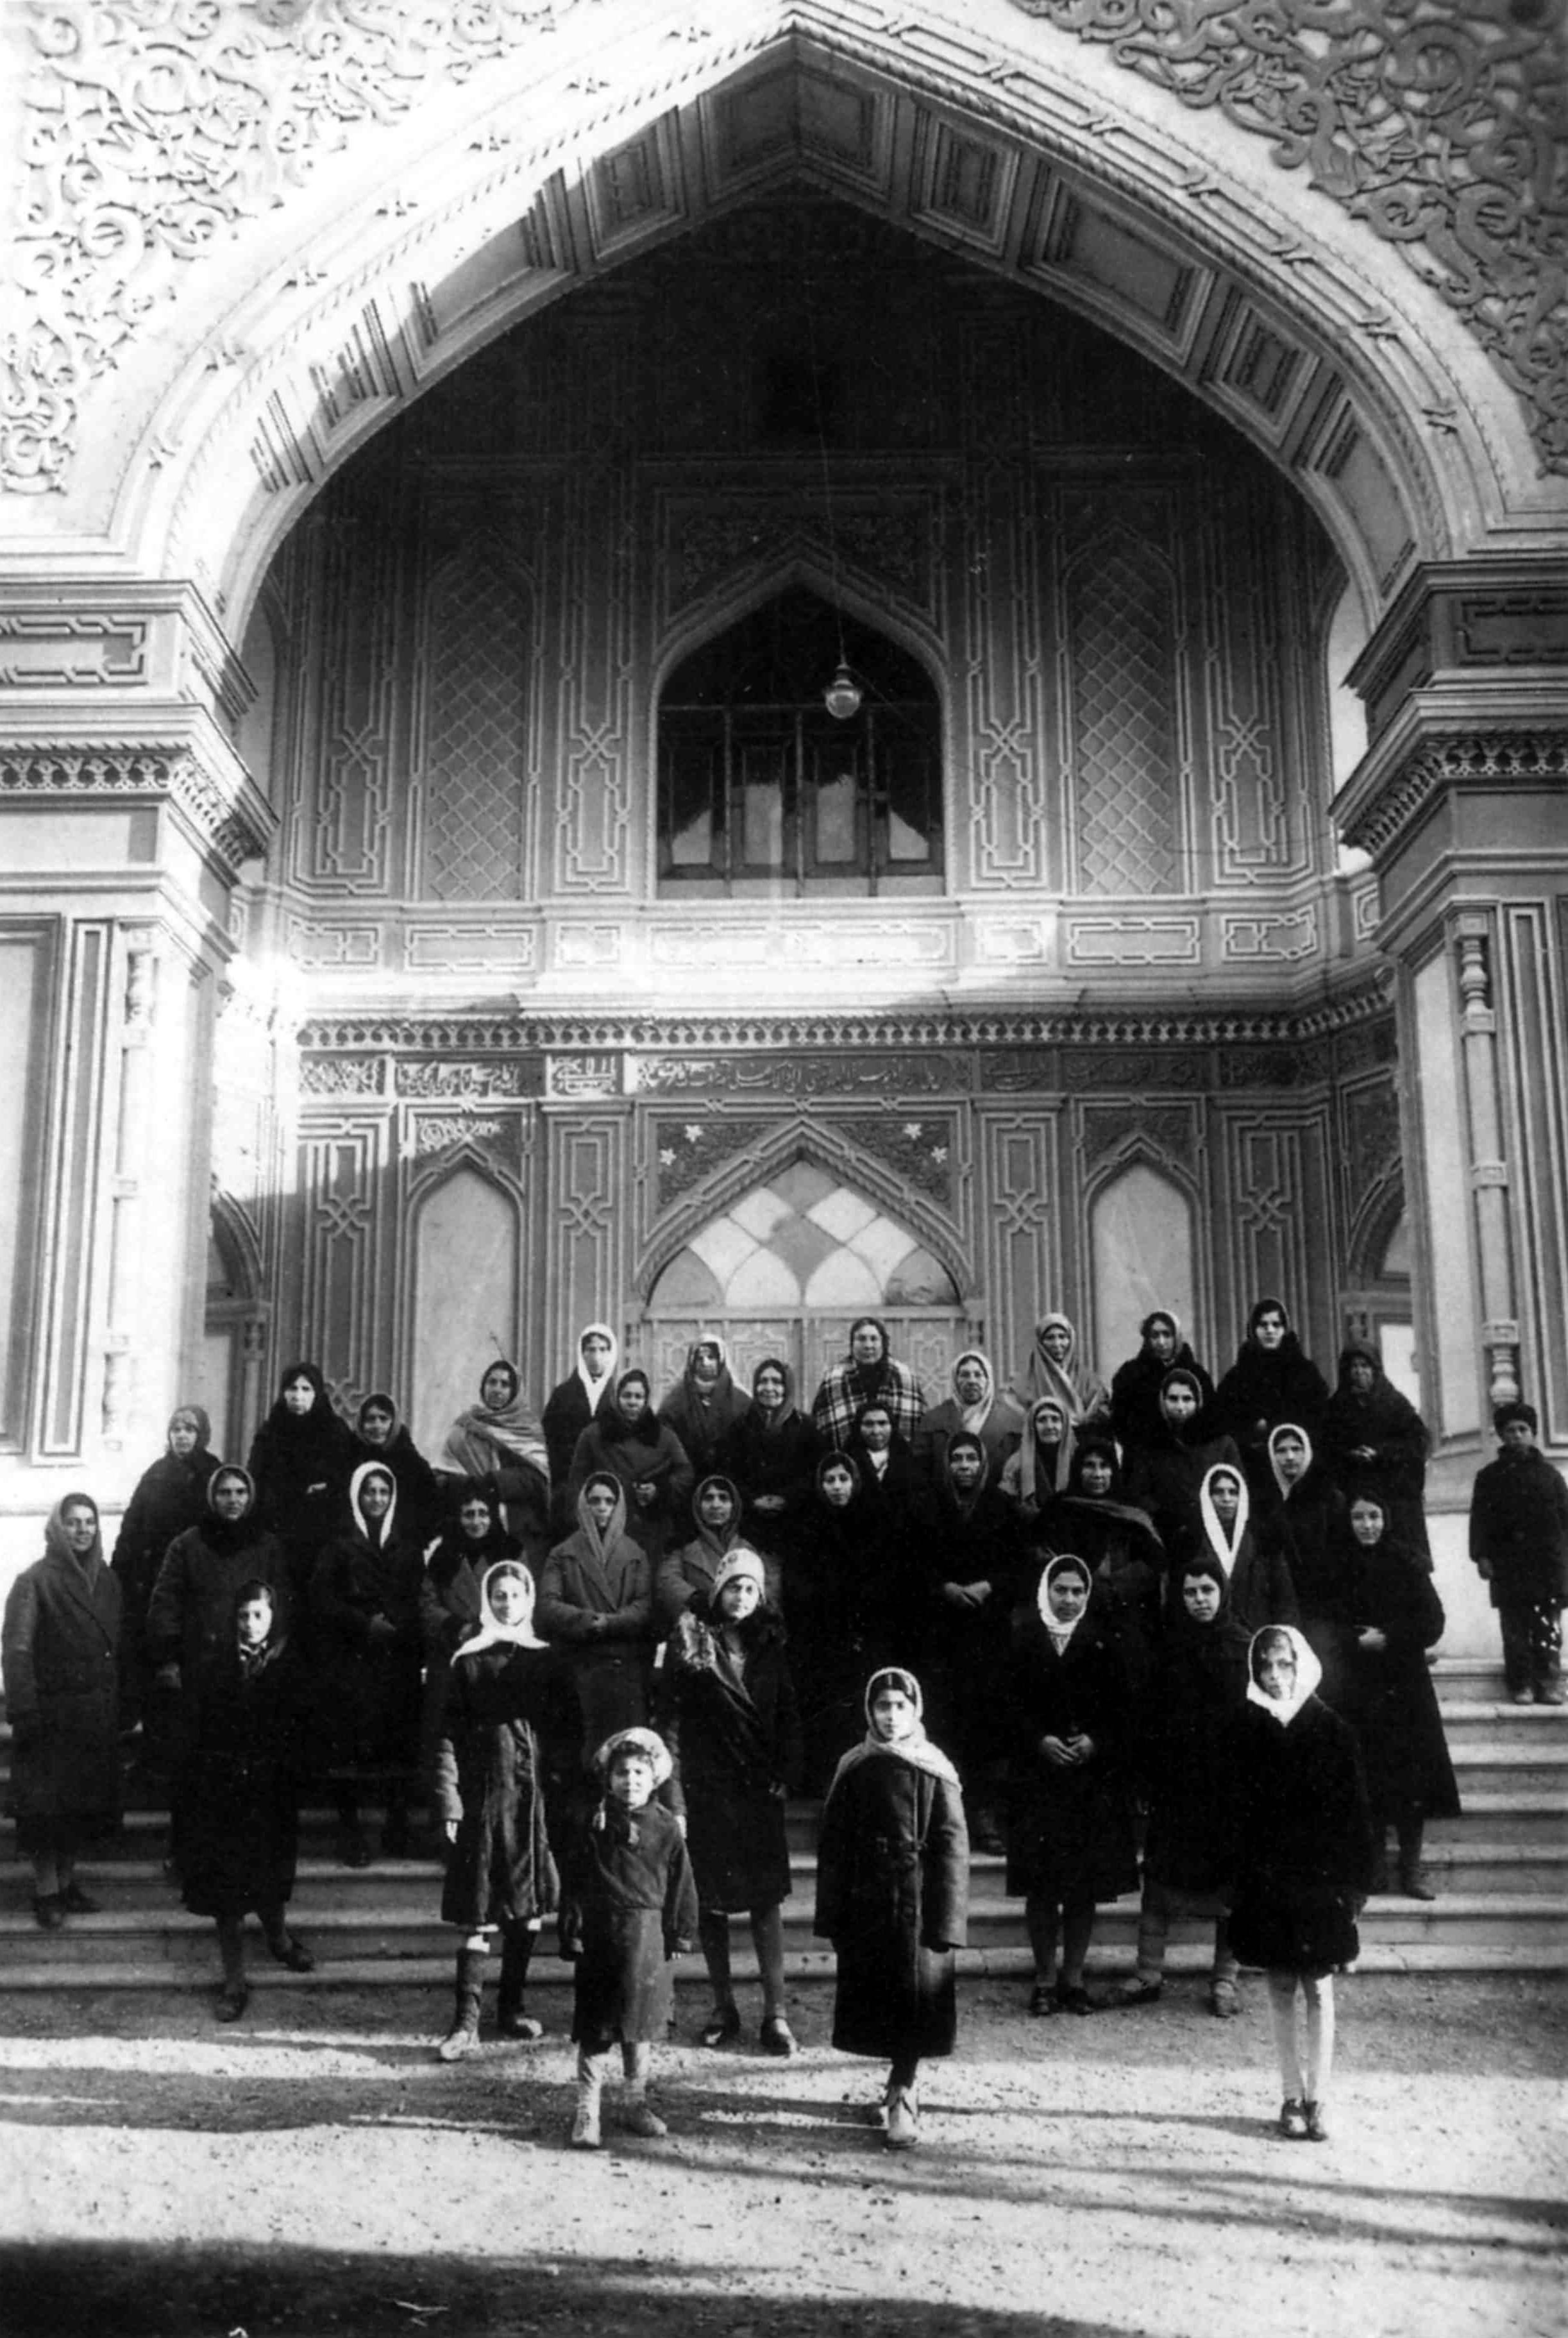 Female Members of the Baha'i Community on the steps of the House of Worship